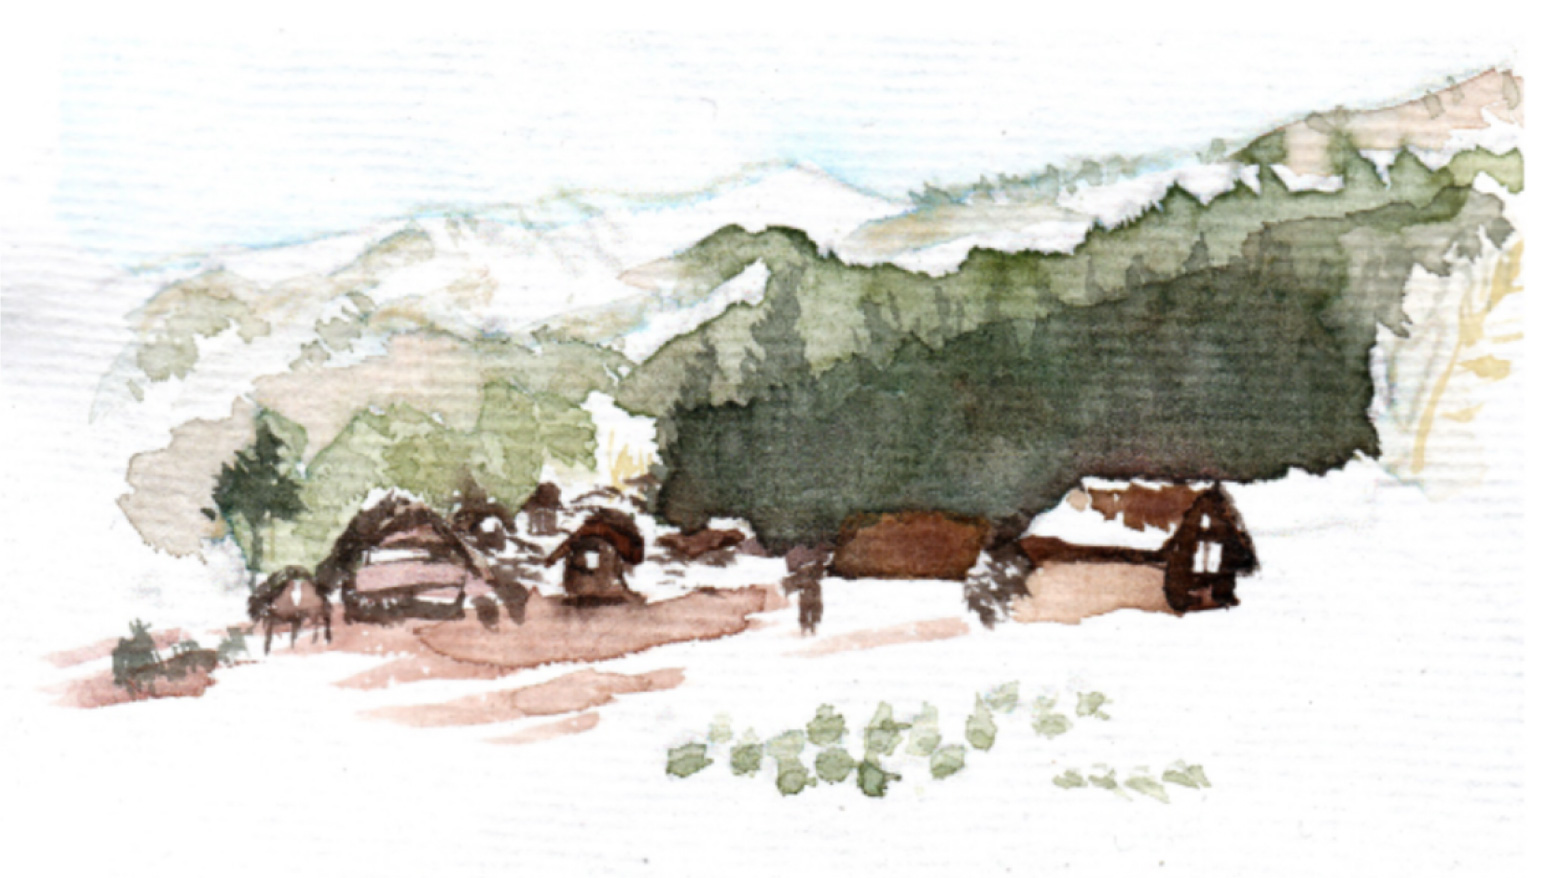 watercolor venue illustration japan shirakawago